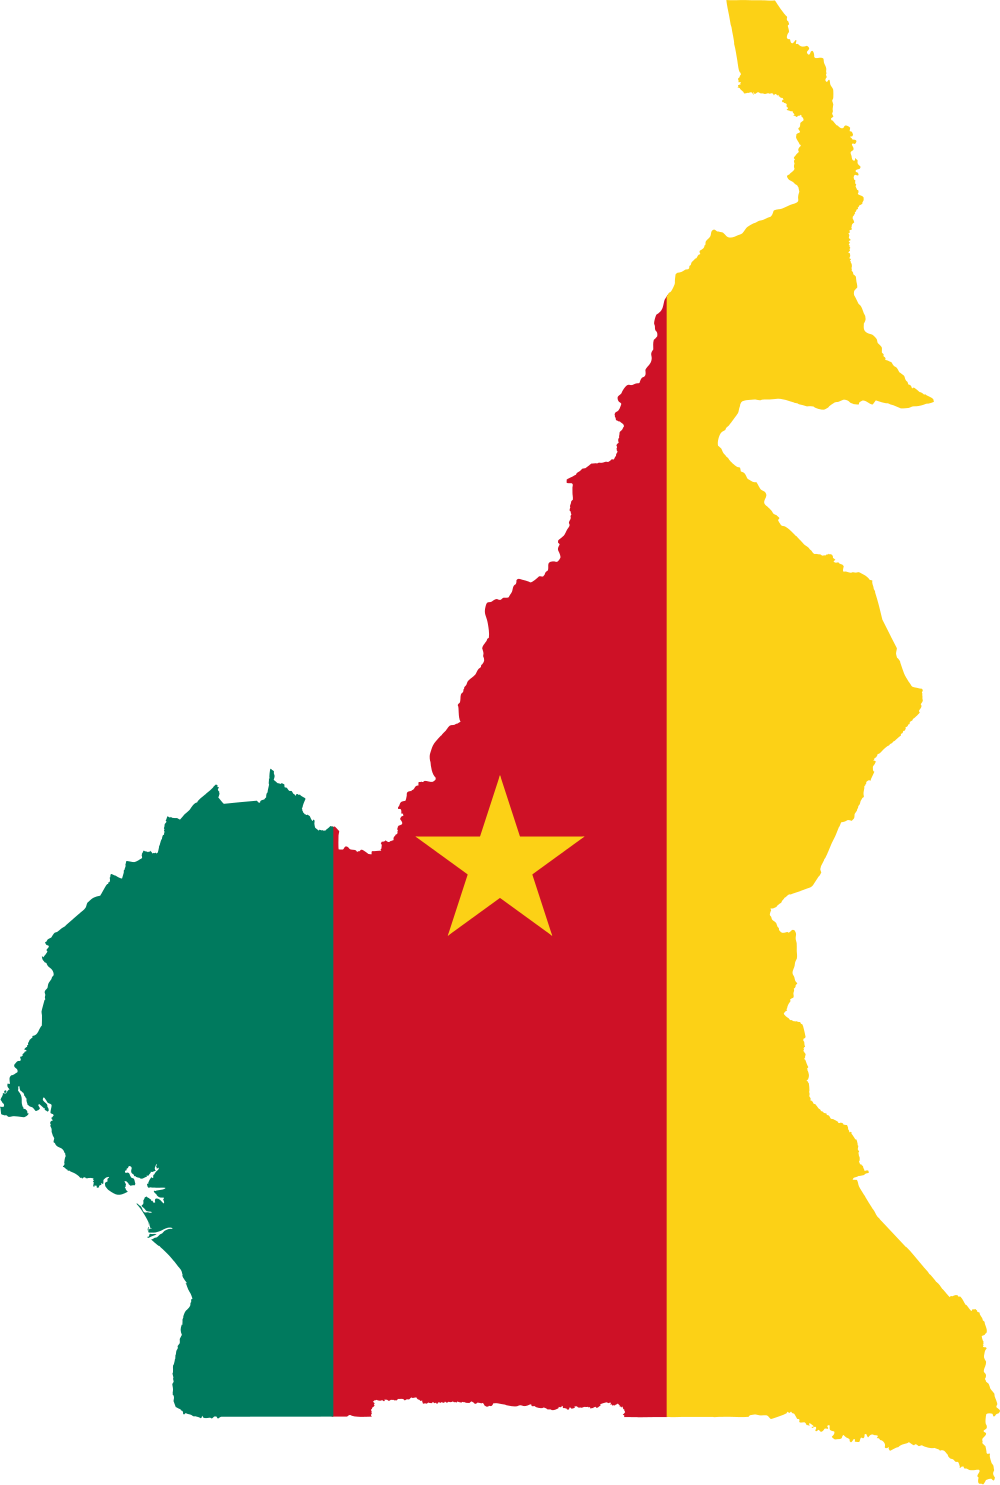 Cameroon: Commercial Disputes - New Arbitration Organ to Proffer Solutions